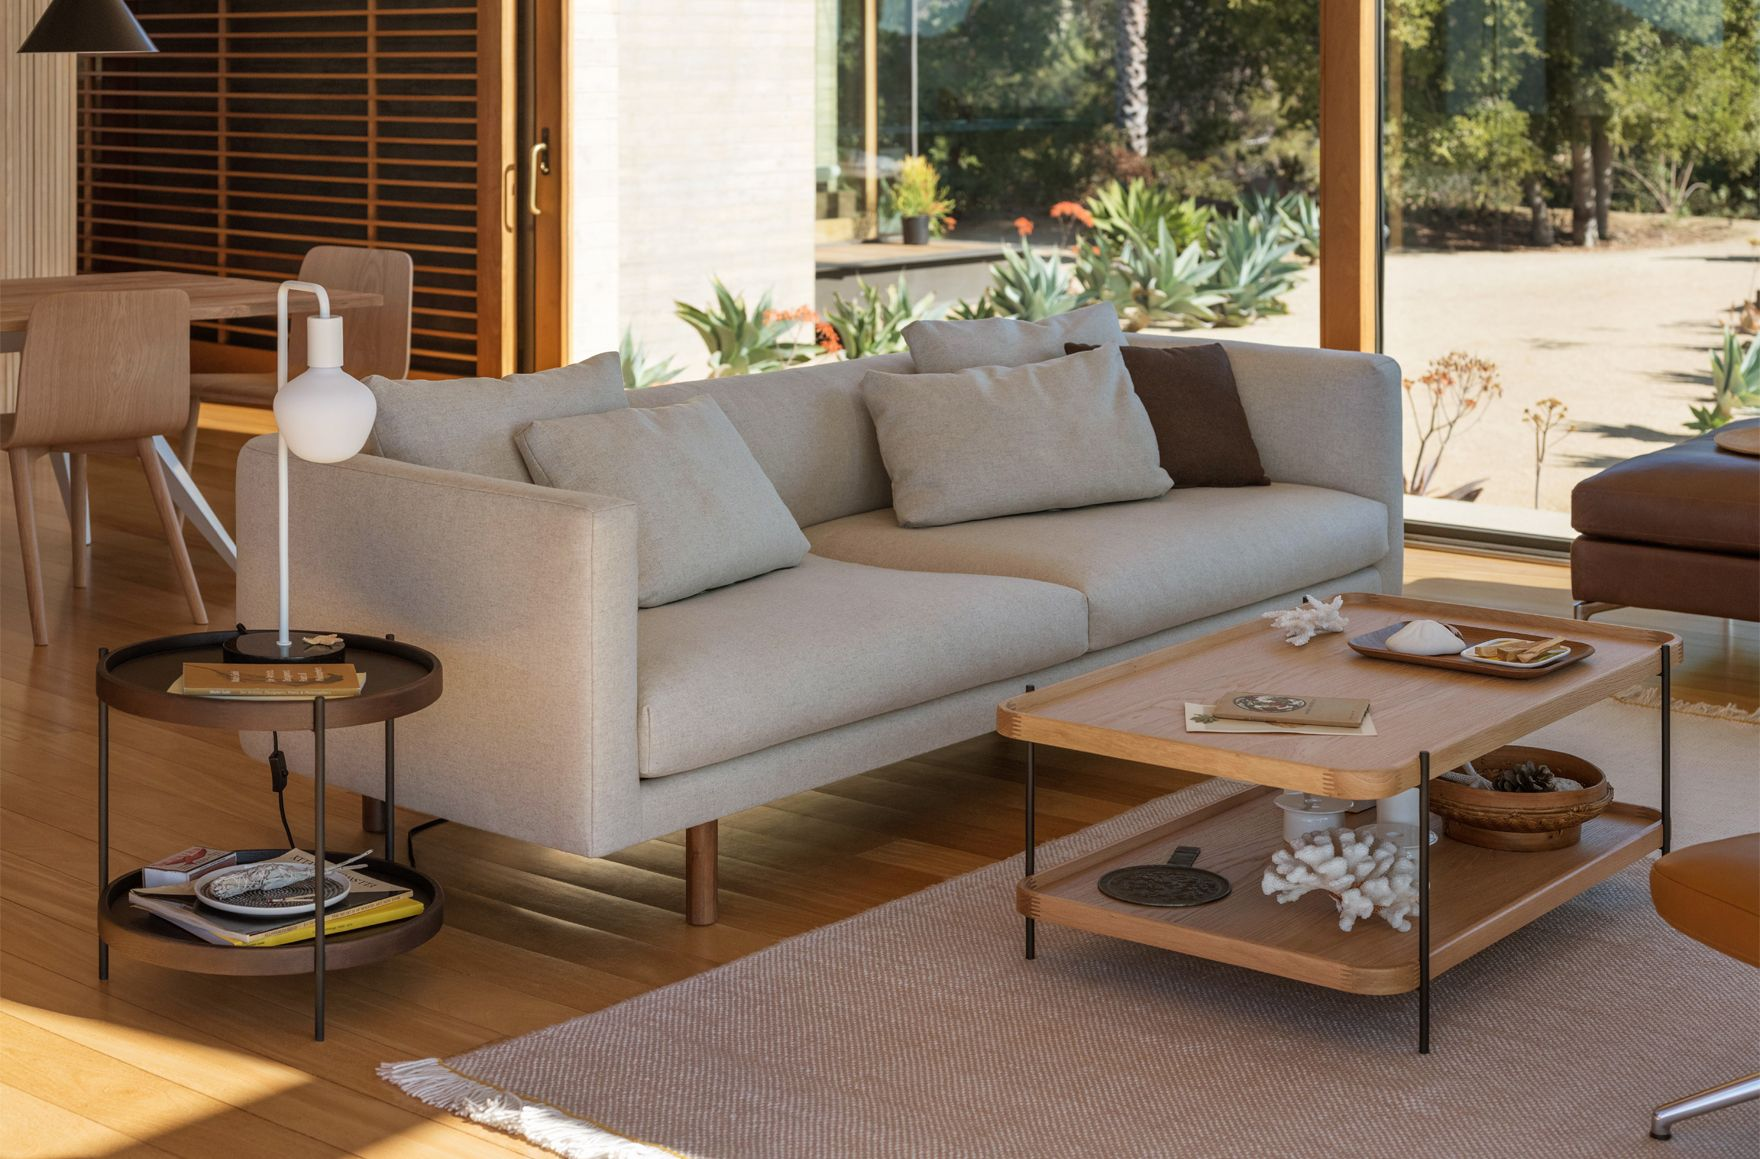 Replay Collection Eq3 Lookbook Furniture Home Living Room Designs